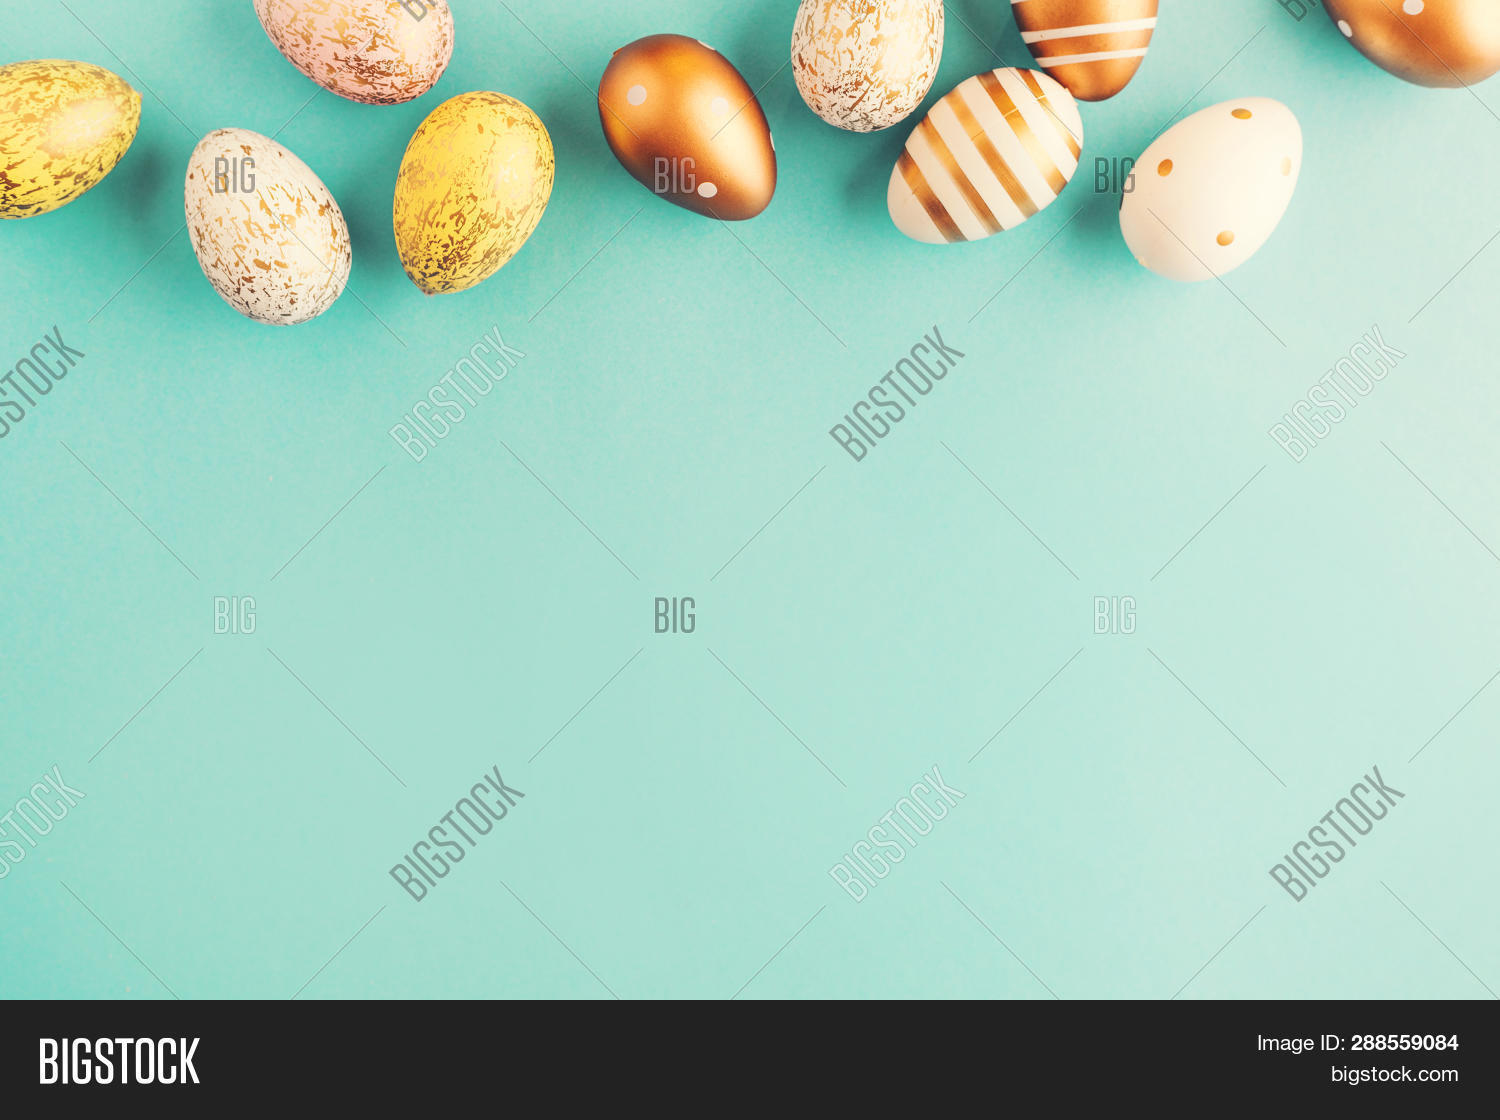 art,background,bright,celebration,colorful,concept,conceptual,copy,creative,decor,decoration,design,dots,easter,egg,festive,flat,gift,gold,golden,group,happy,holiday,lay,minimal,minimalist,modern,paint,pastel,row,space,spring,still,stripes,style,stylish,symbol,top,traditional,turquoise,view